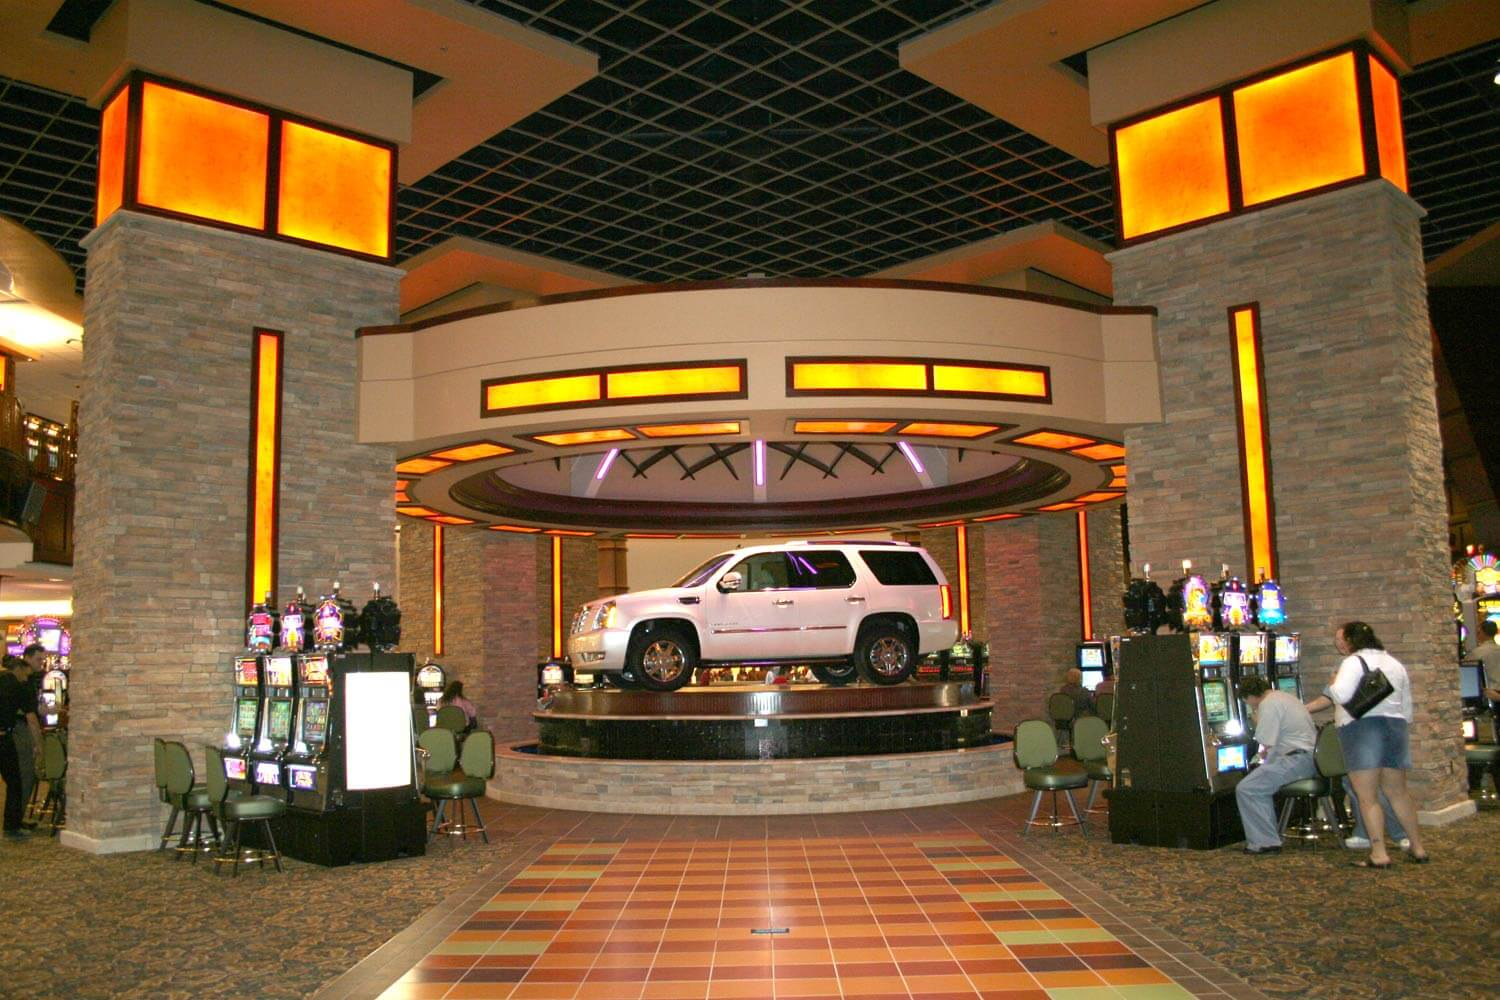 Entryway at the Grand Casino Image